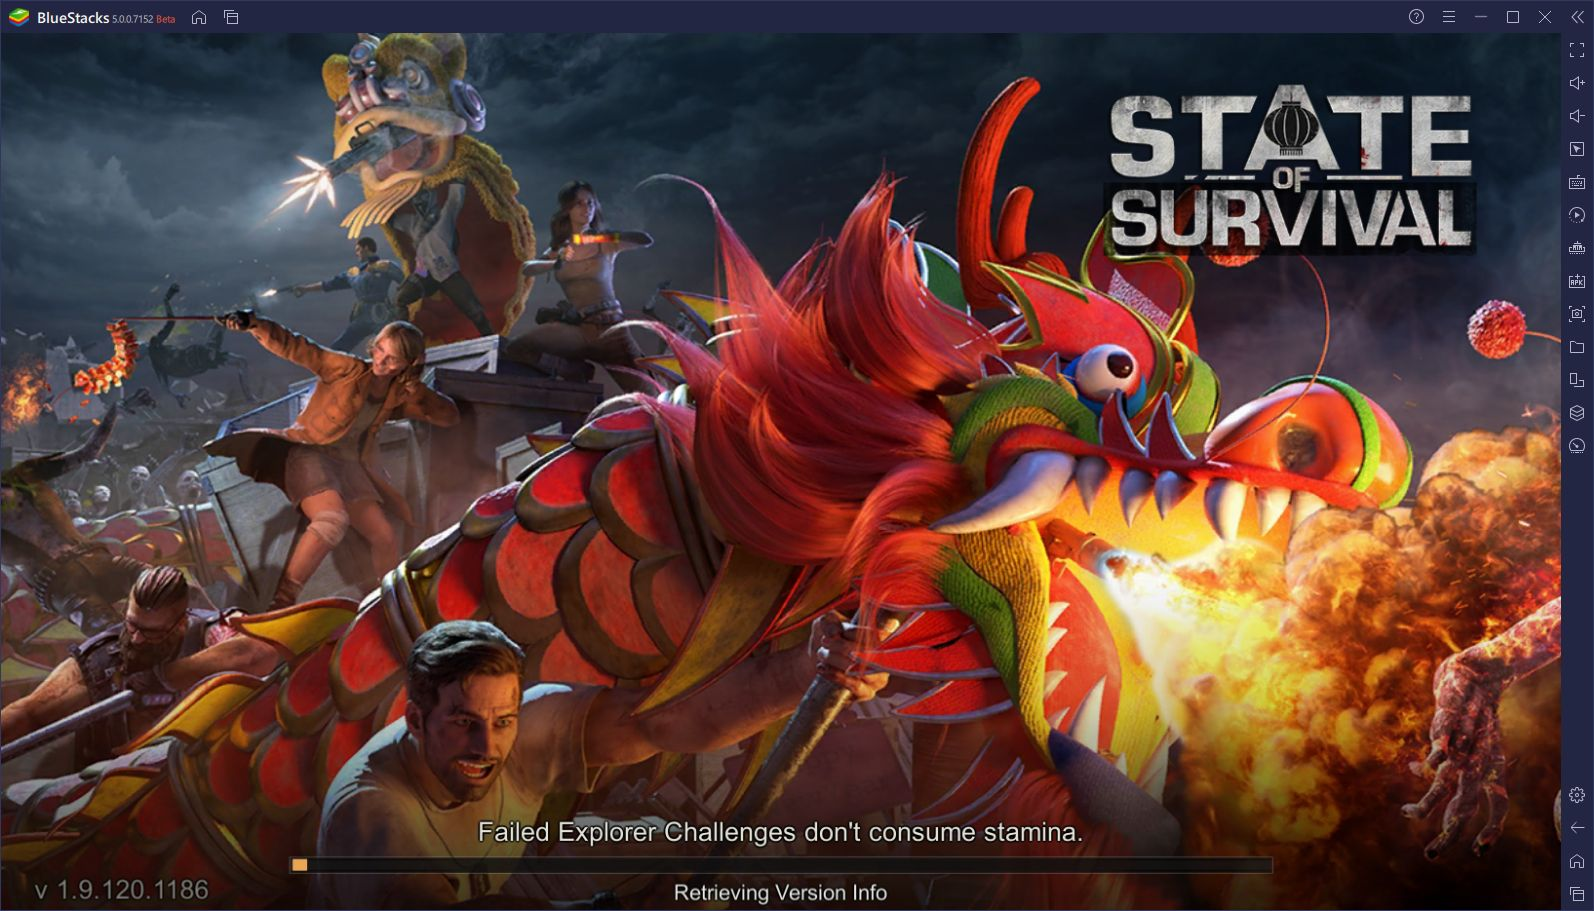 The Top Android Strategy Games to Play on BlueStacks 5